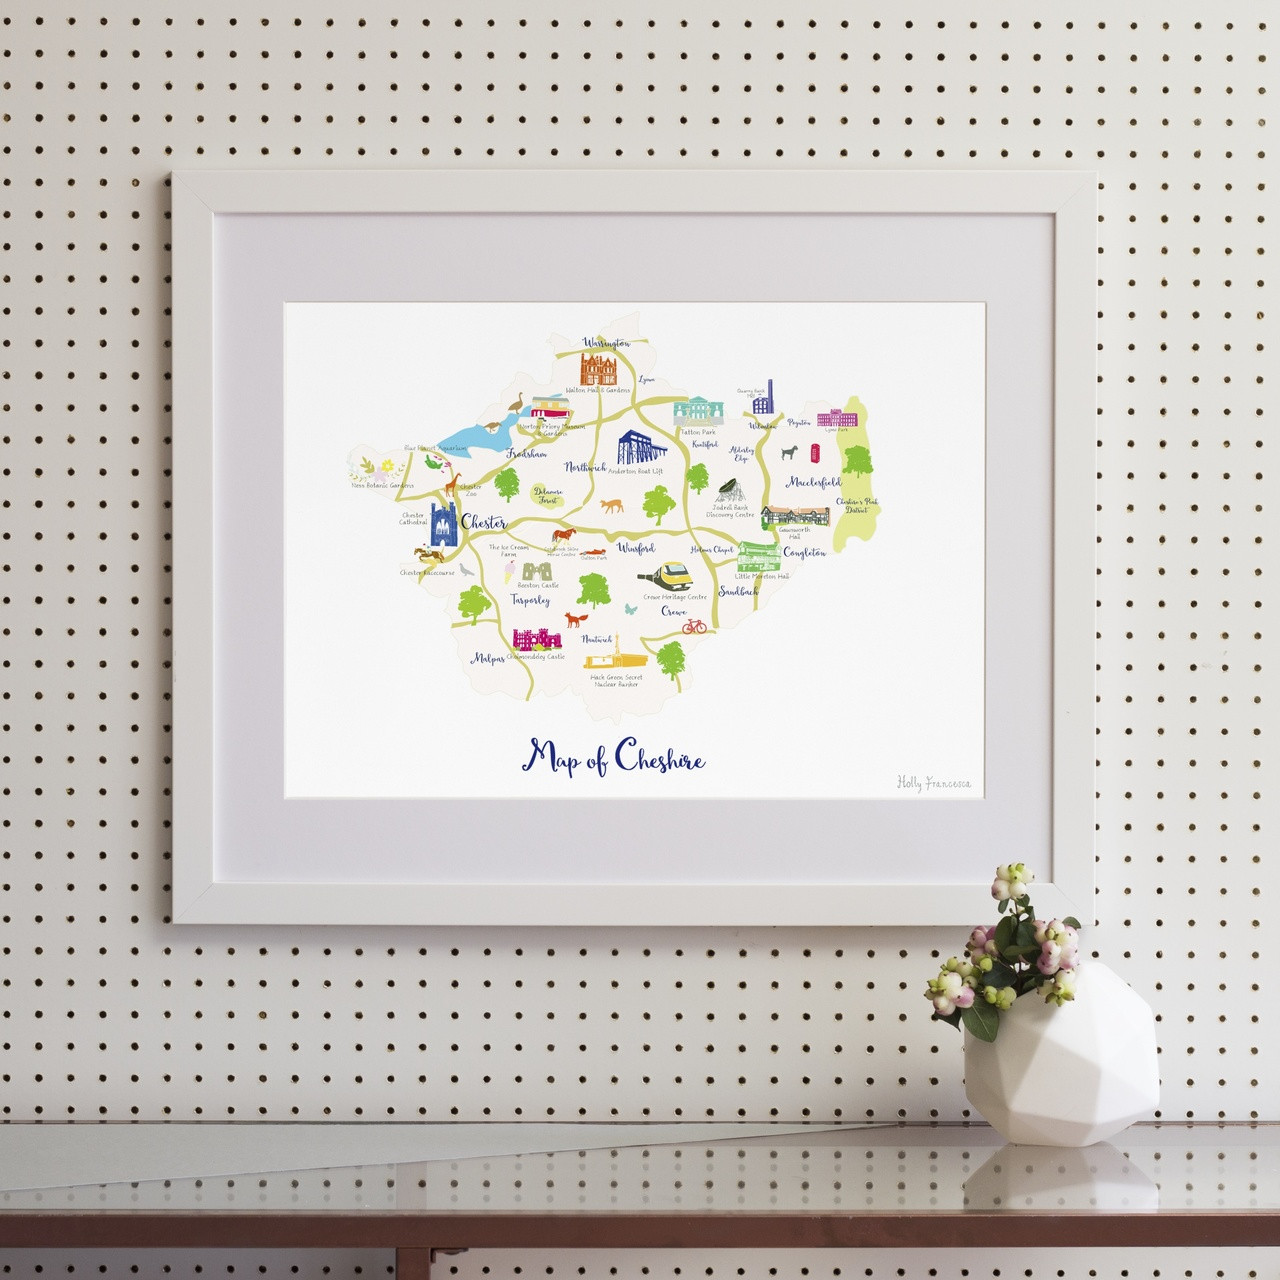 Illustrated Hand Drawn Map Of Cheshire By Uk Artist Holly Francesca